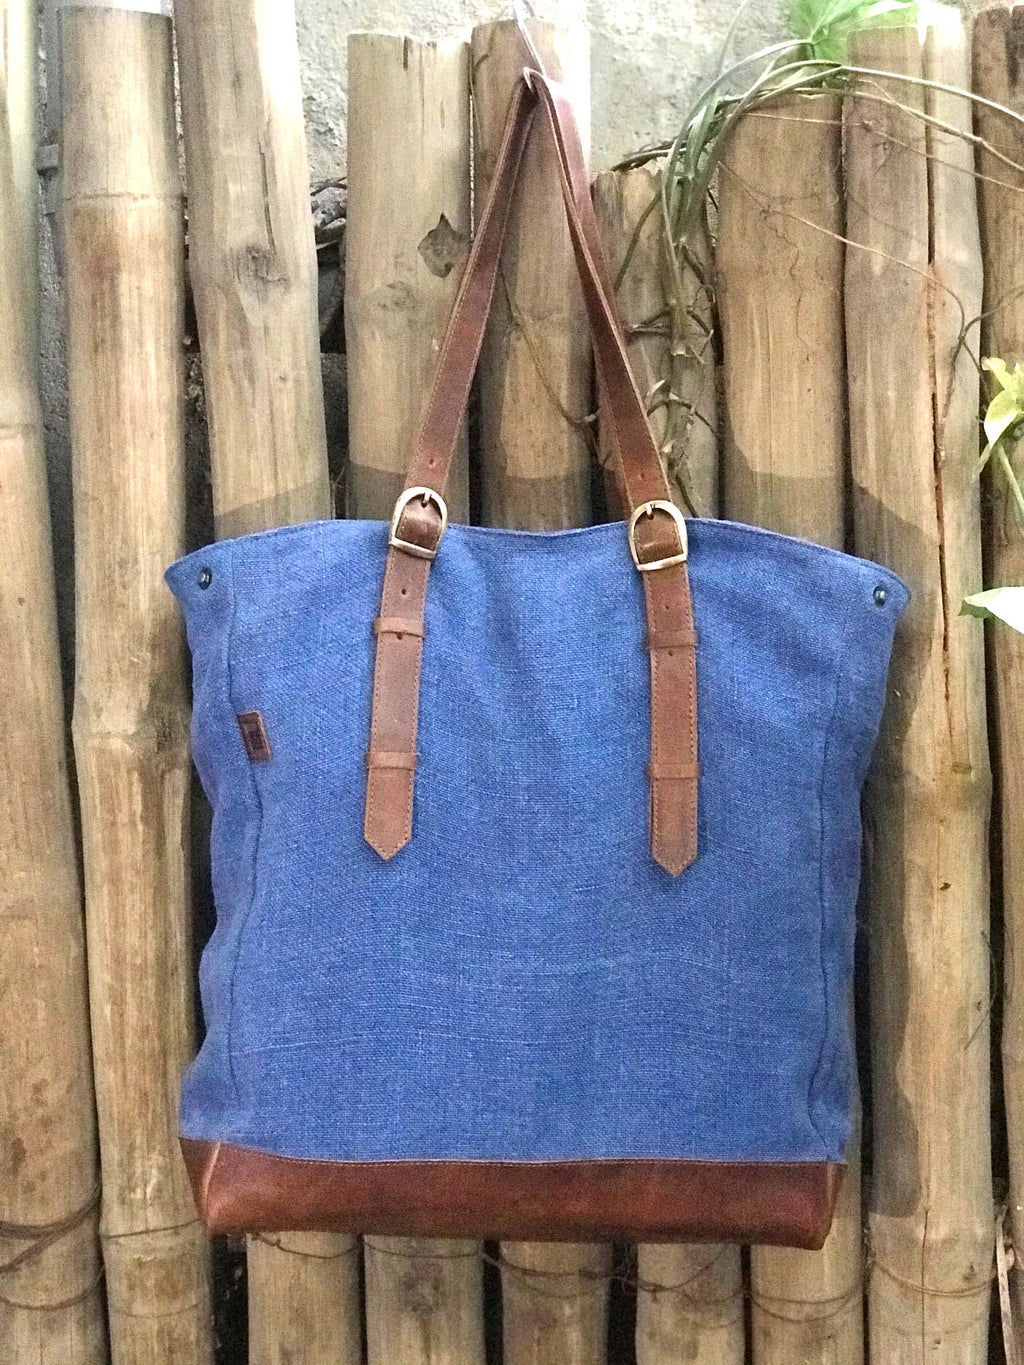 Original Burlap Tote with Leather Base